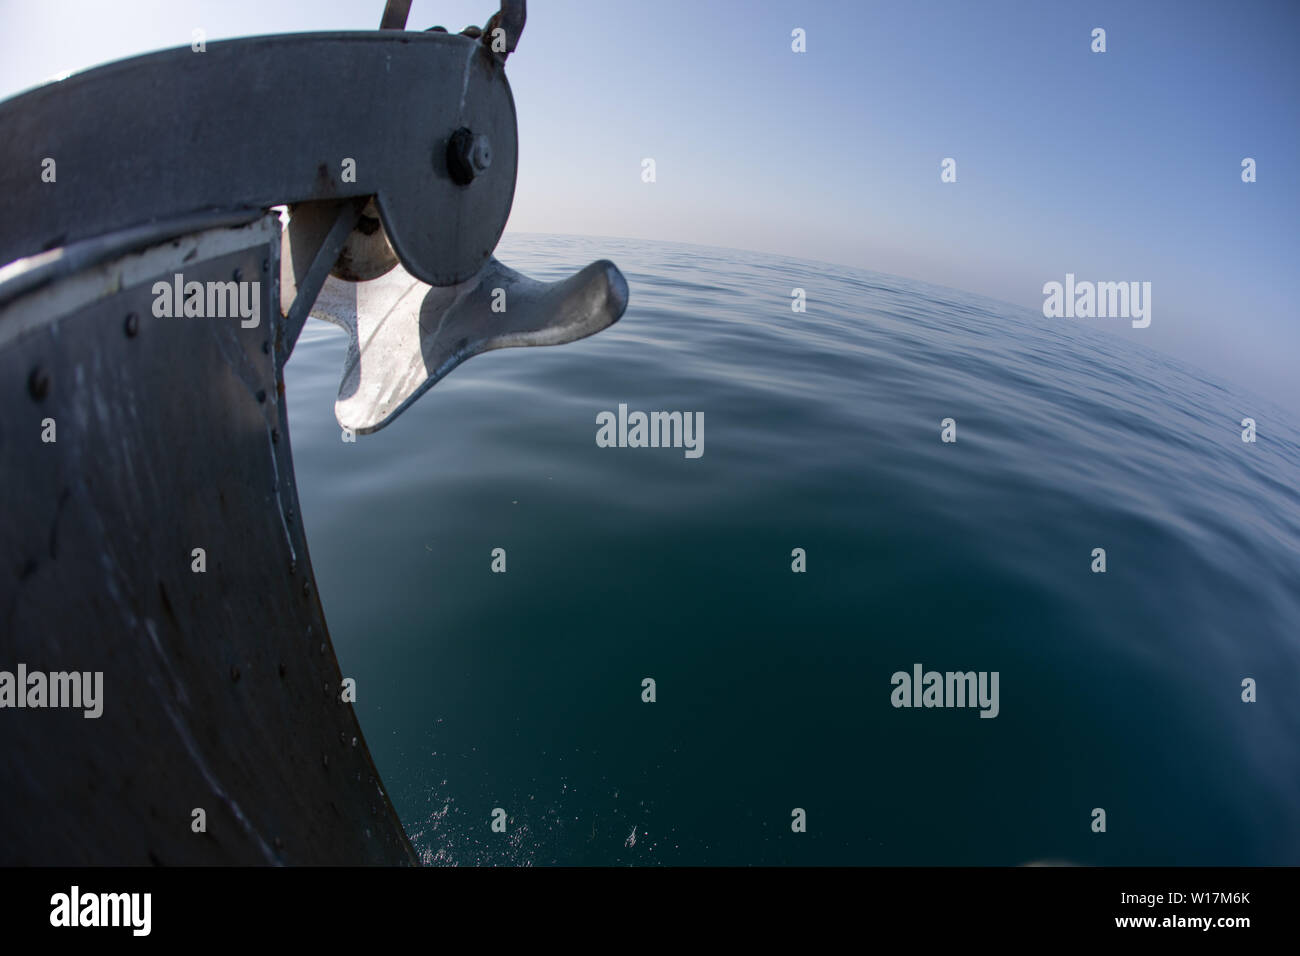 A bow of a boat on a calm ocean surface on a clear day Stock Photo